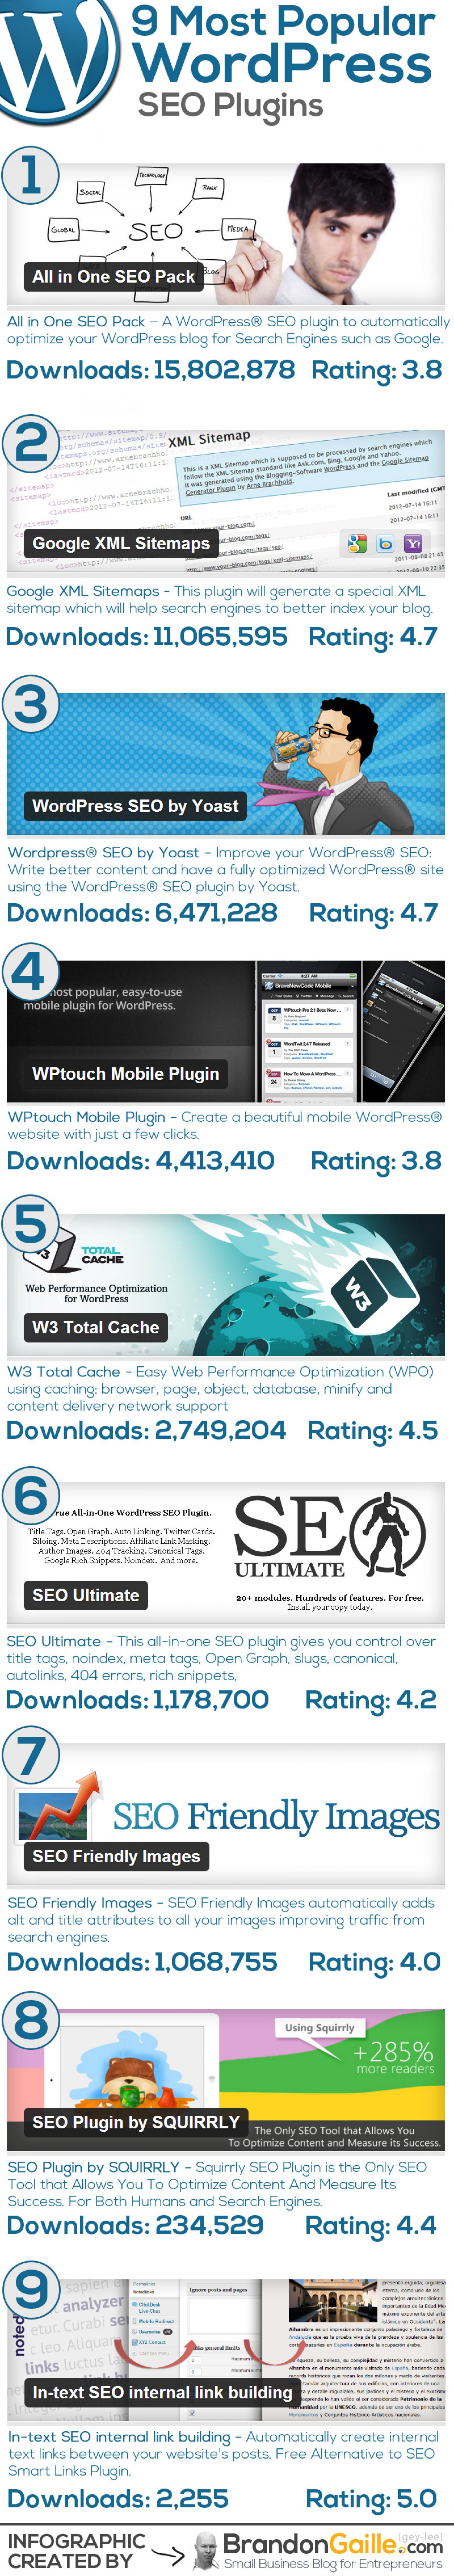 9 Killer SEO Plugins for Wordpress Infographic